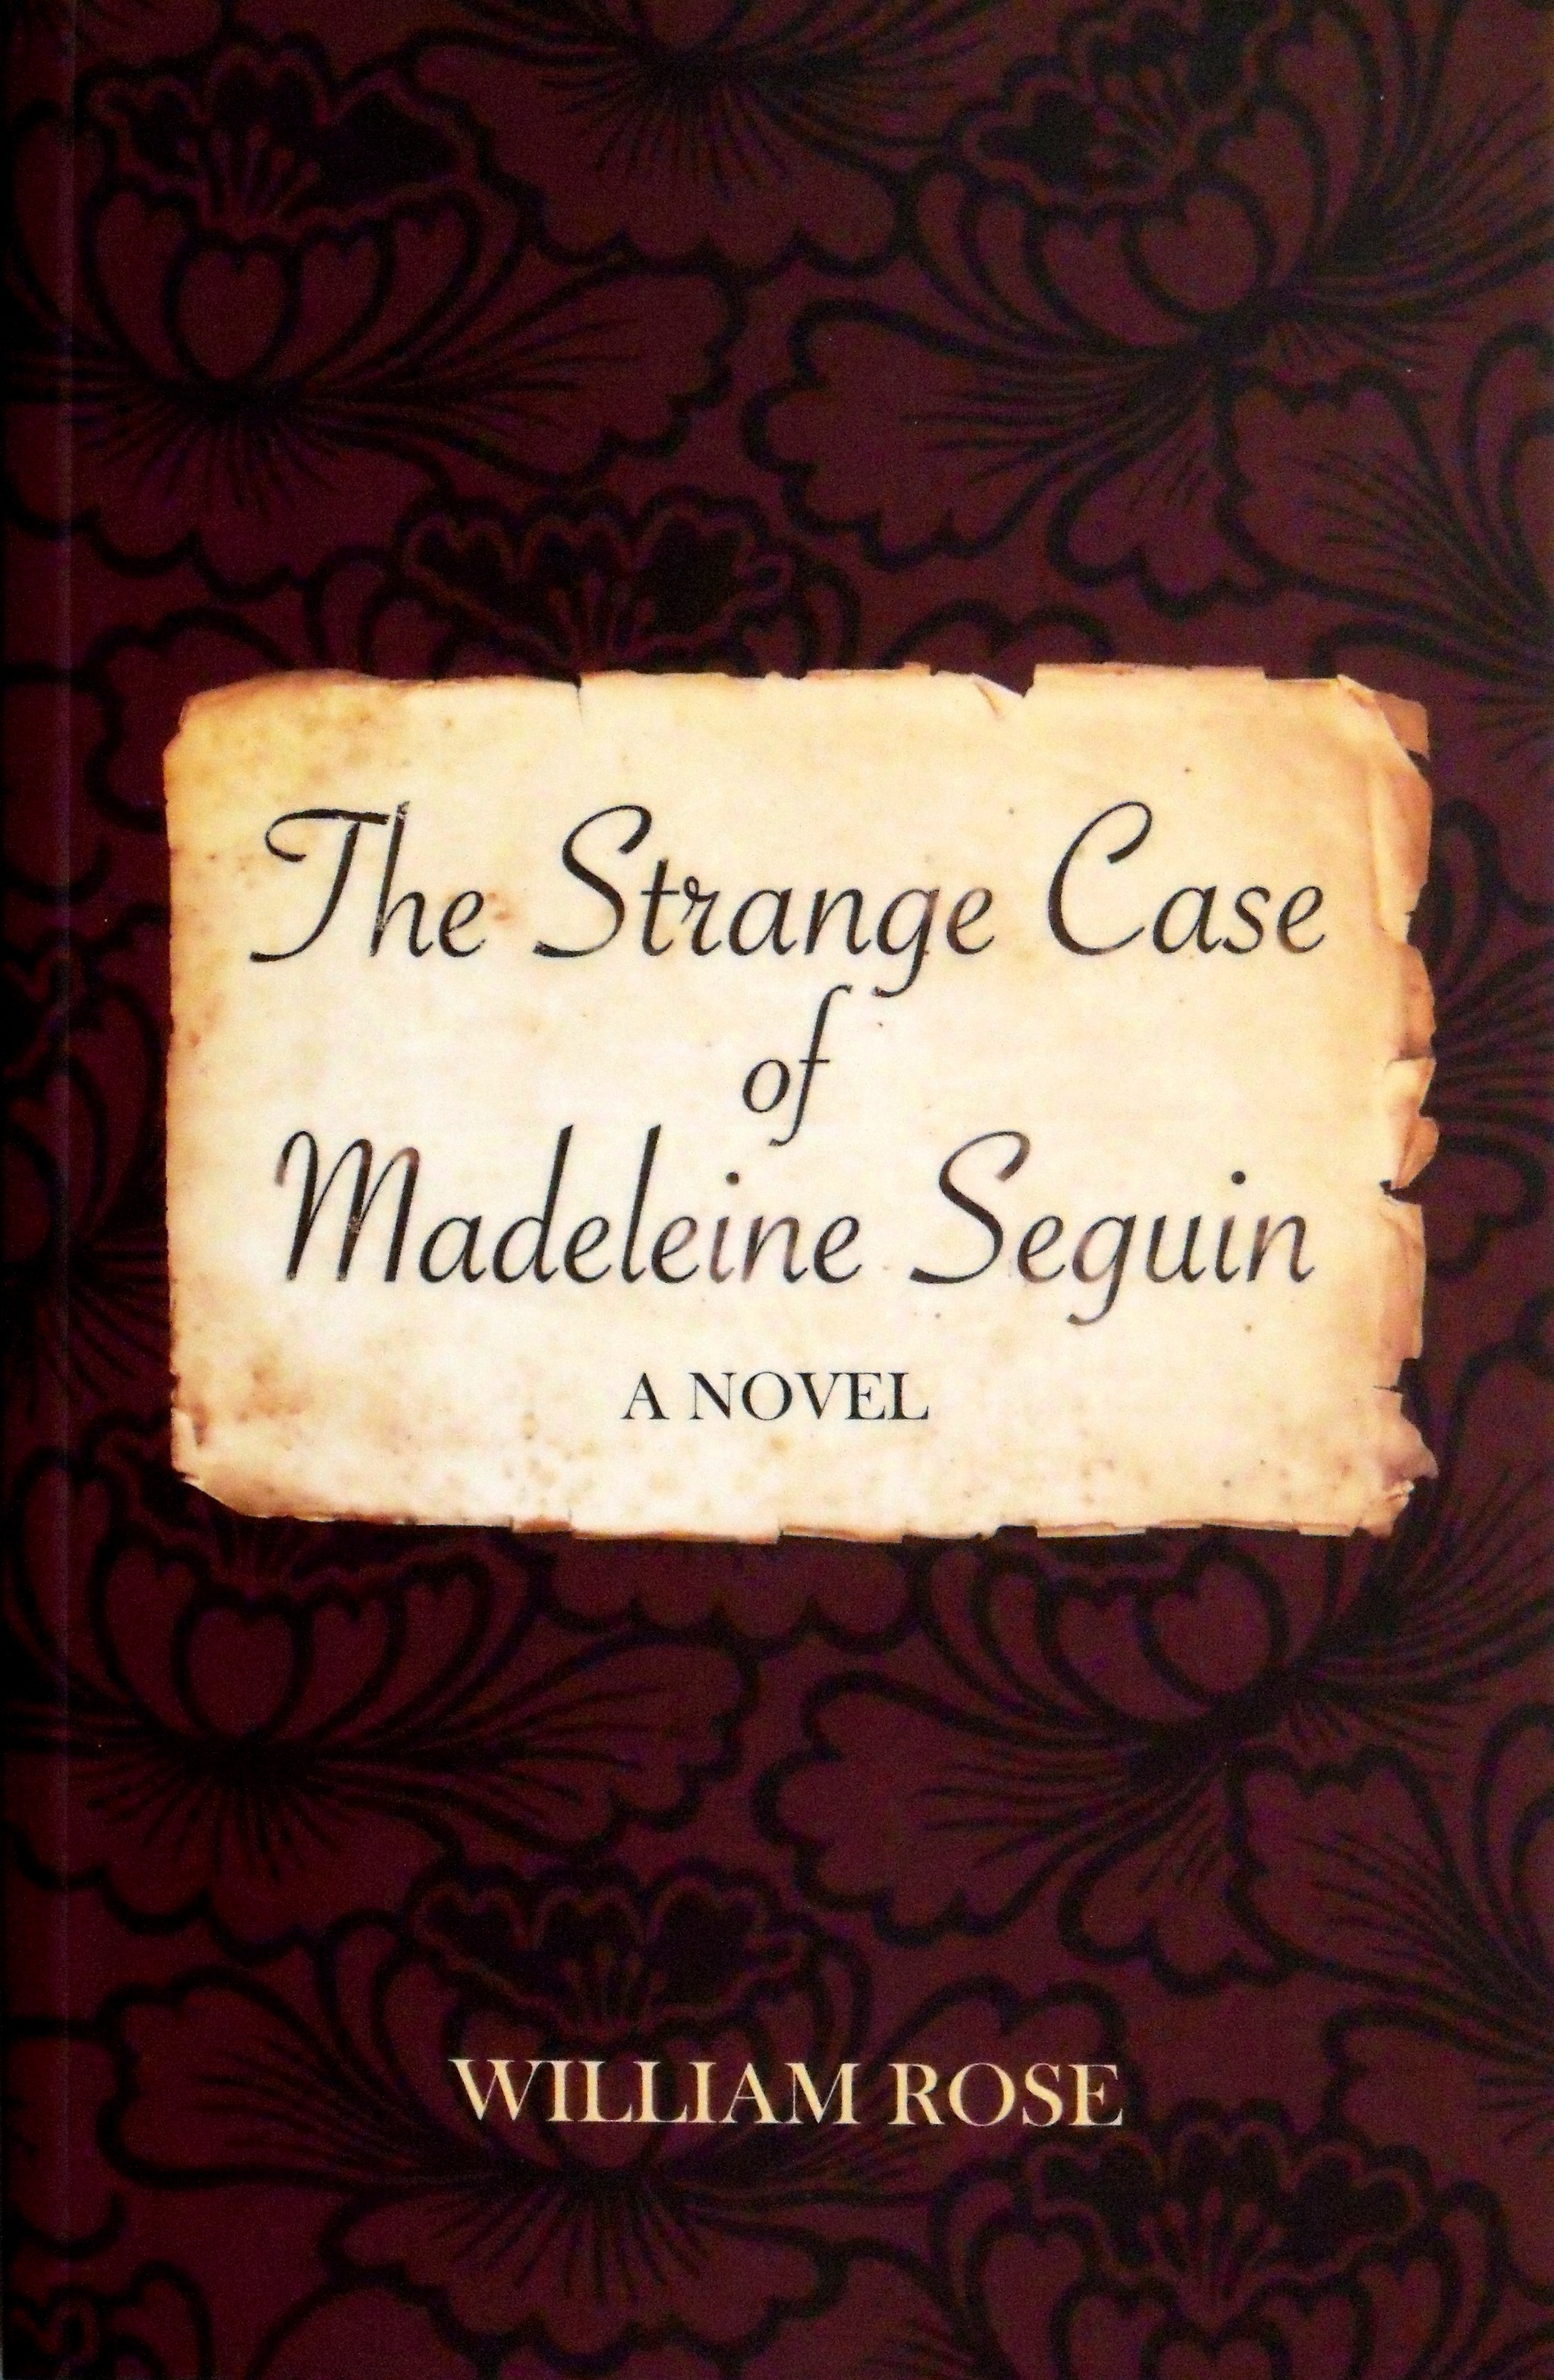 /images/The Strange Case of Madeleine Seguin Cover Twitter 2.jpg